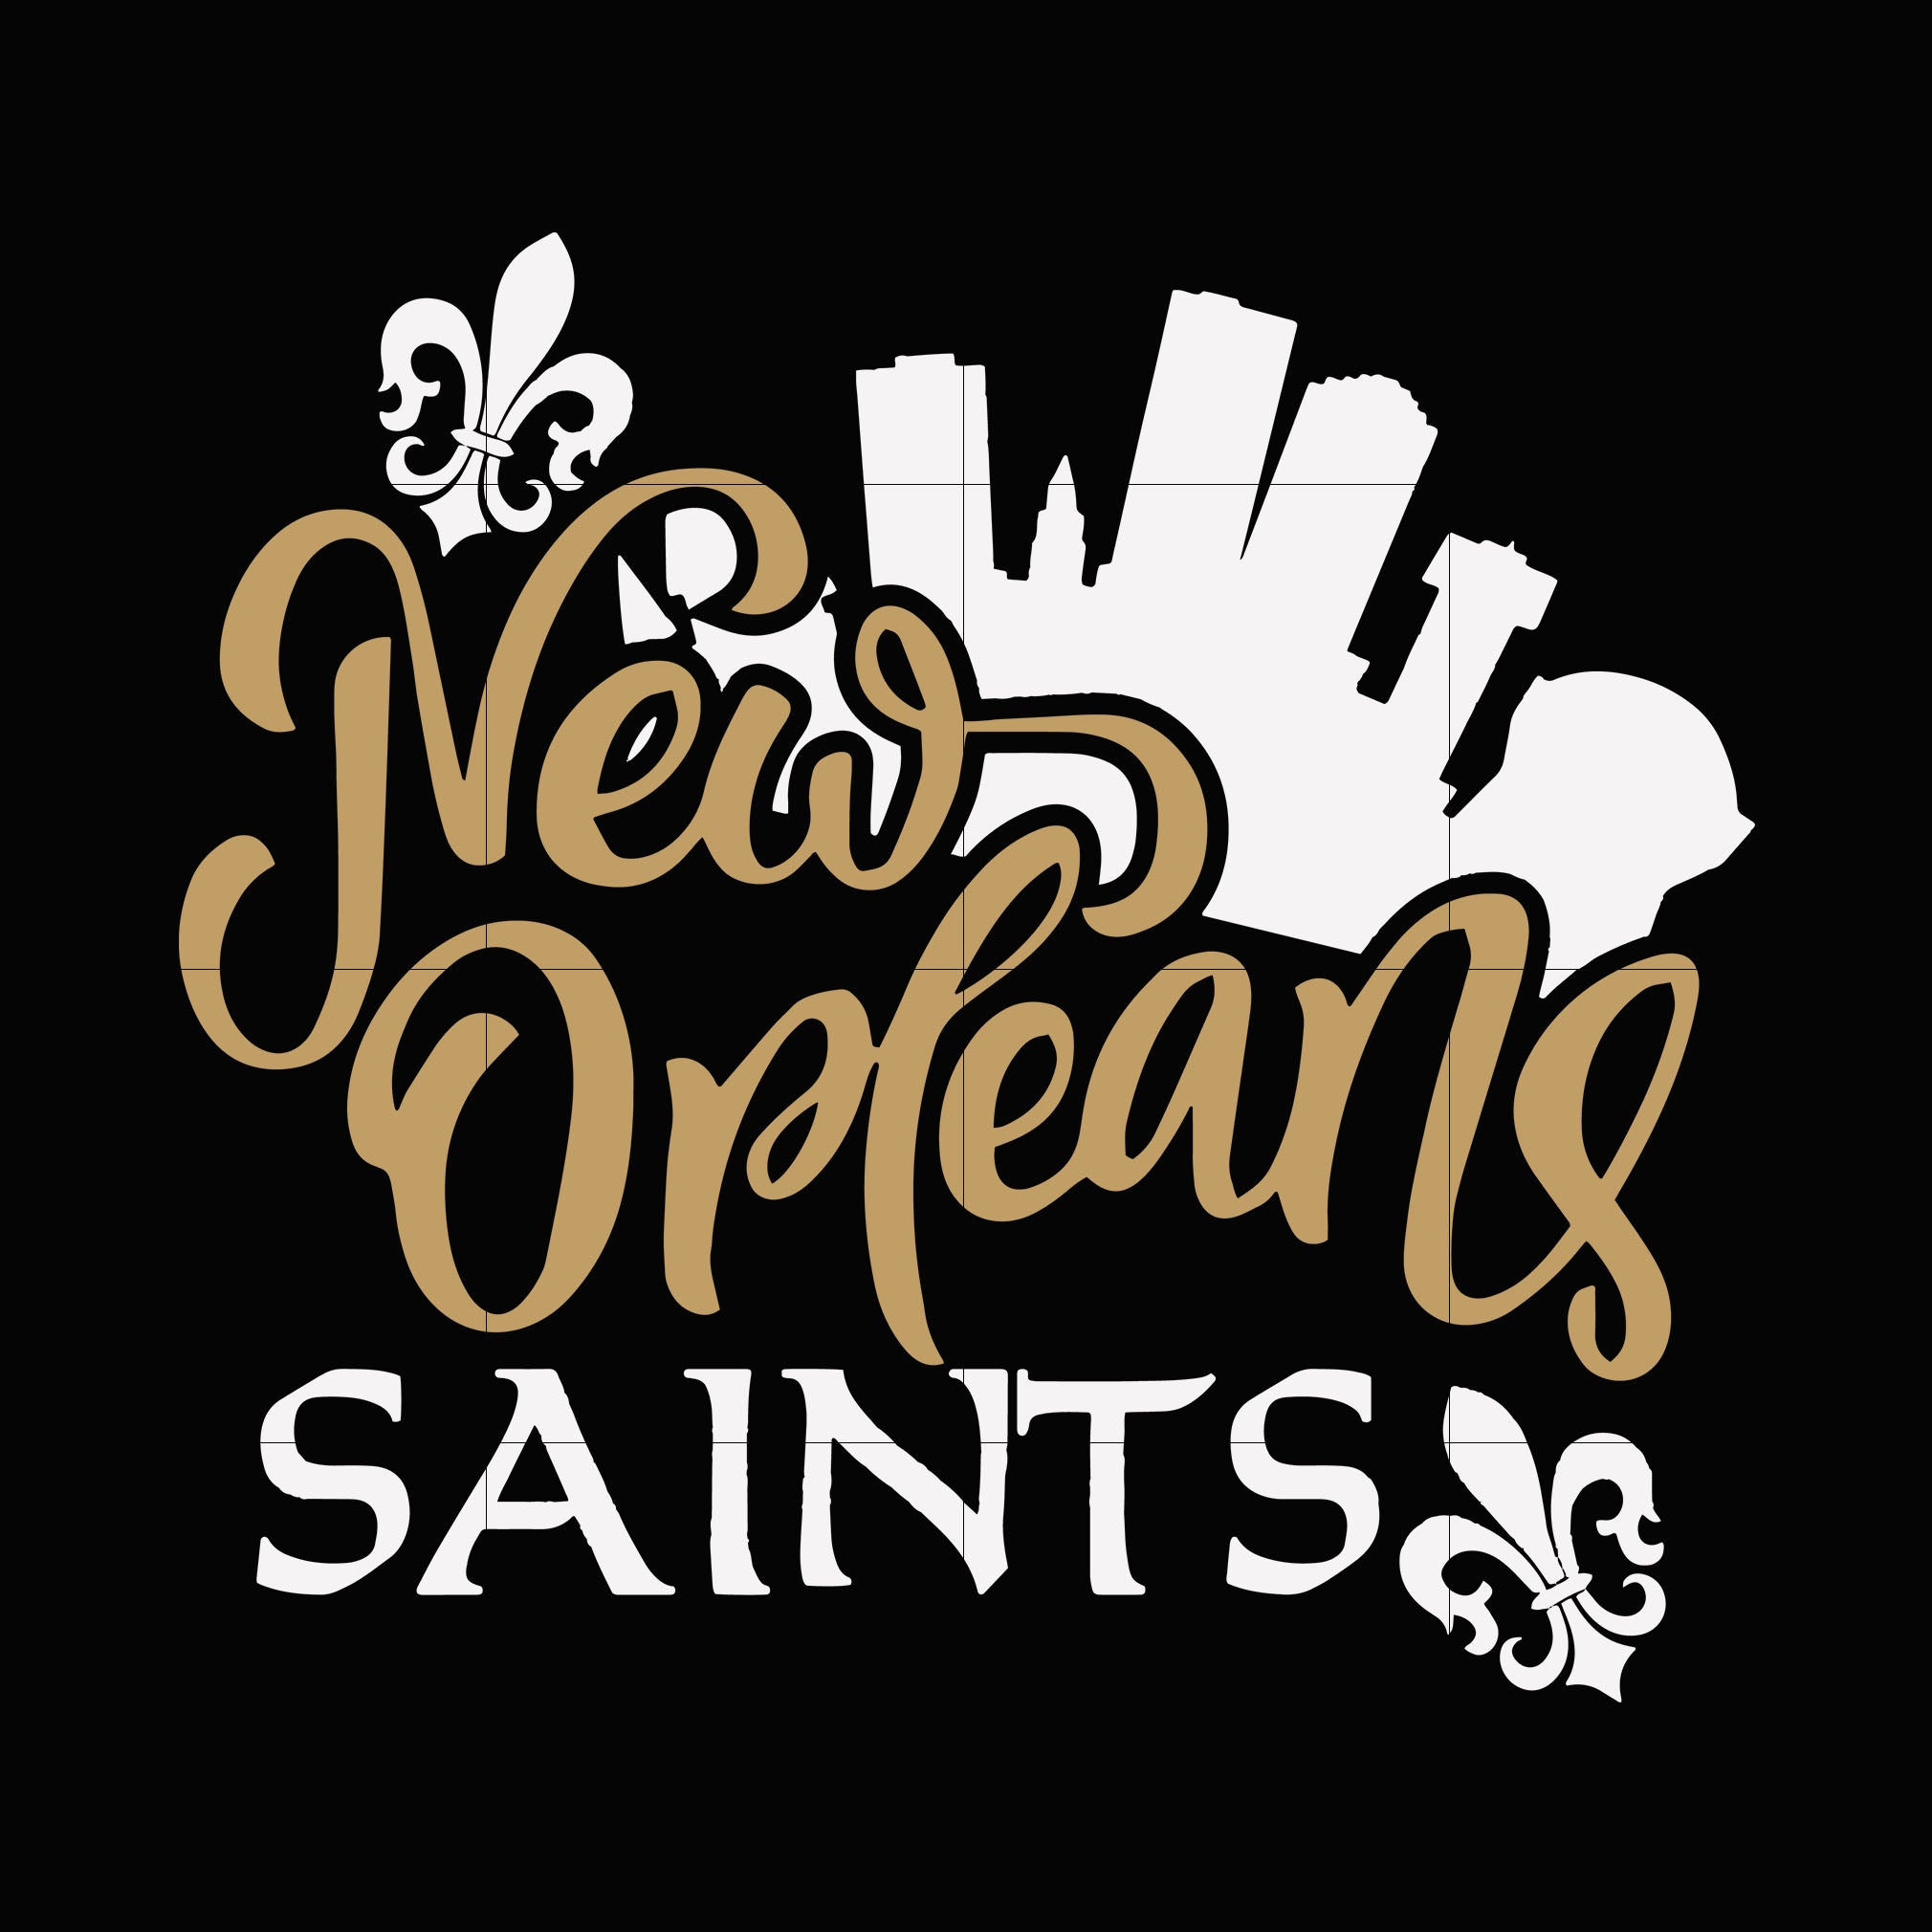 New orleans saints svg, new orleans saints svg, svg for cut